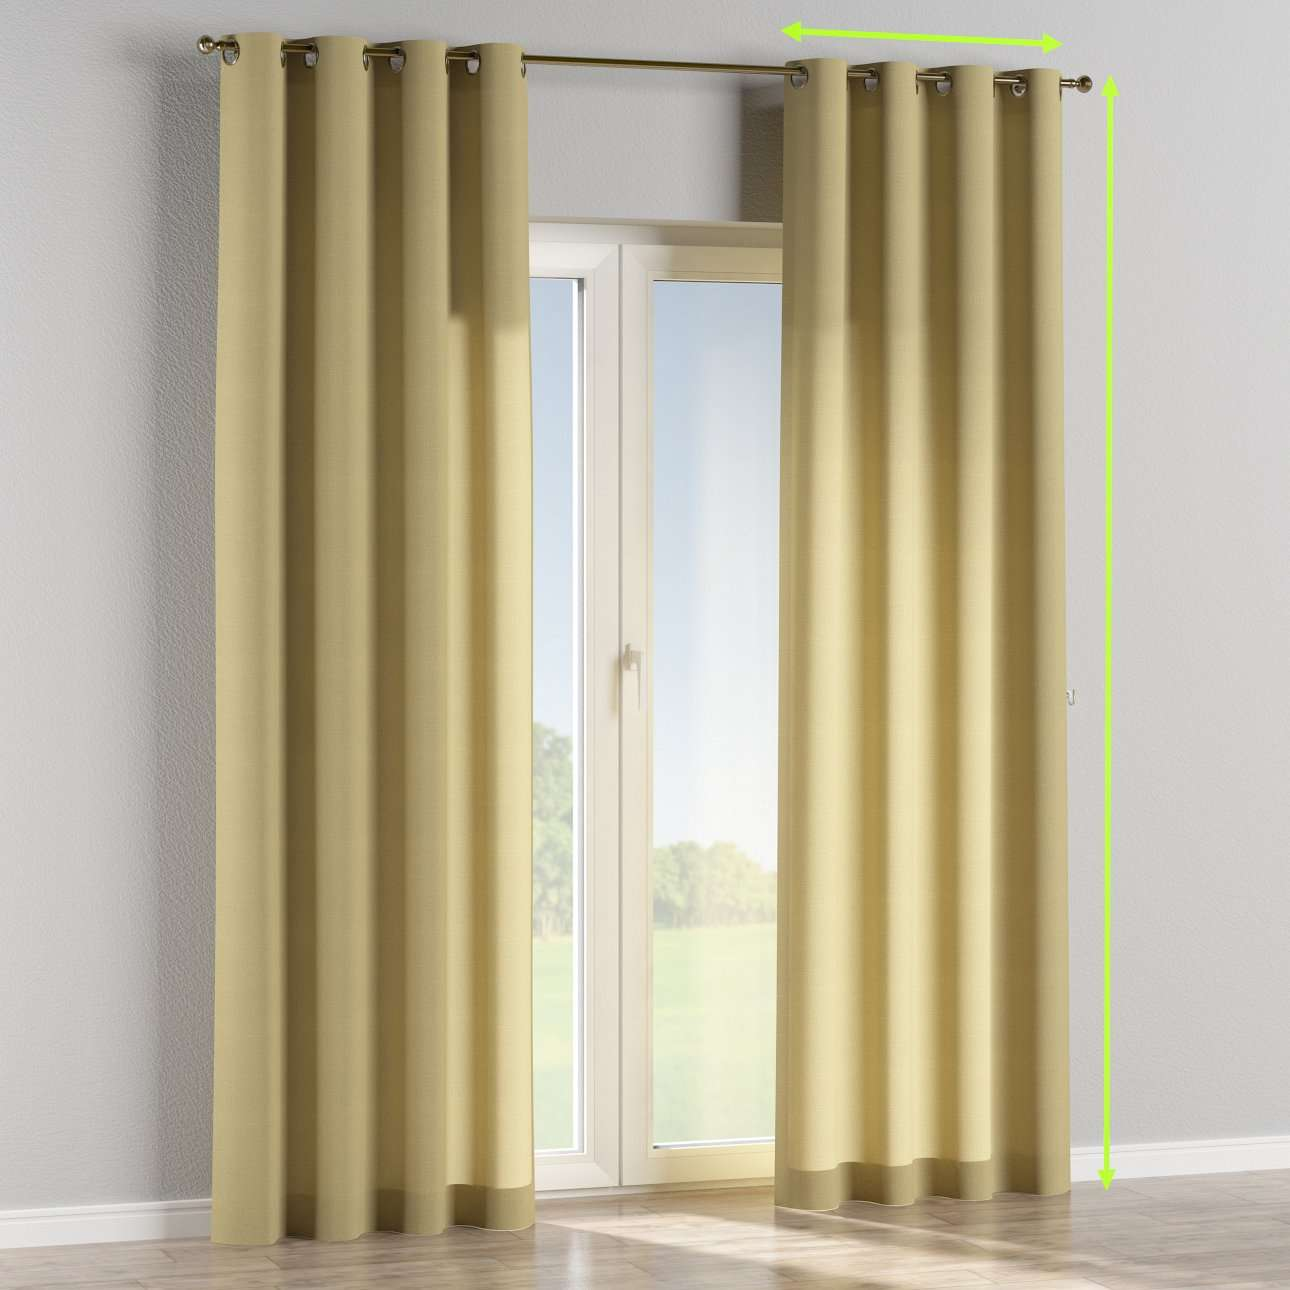 Eyelet curtains in collection Cardiff, fabric: 136-22